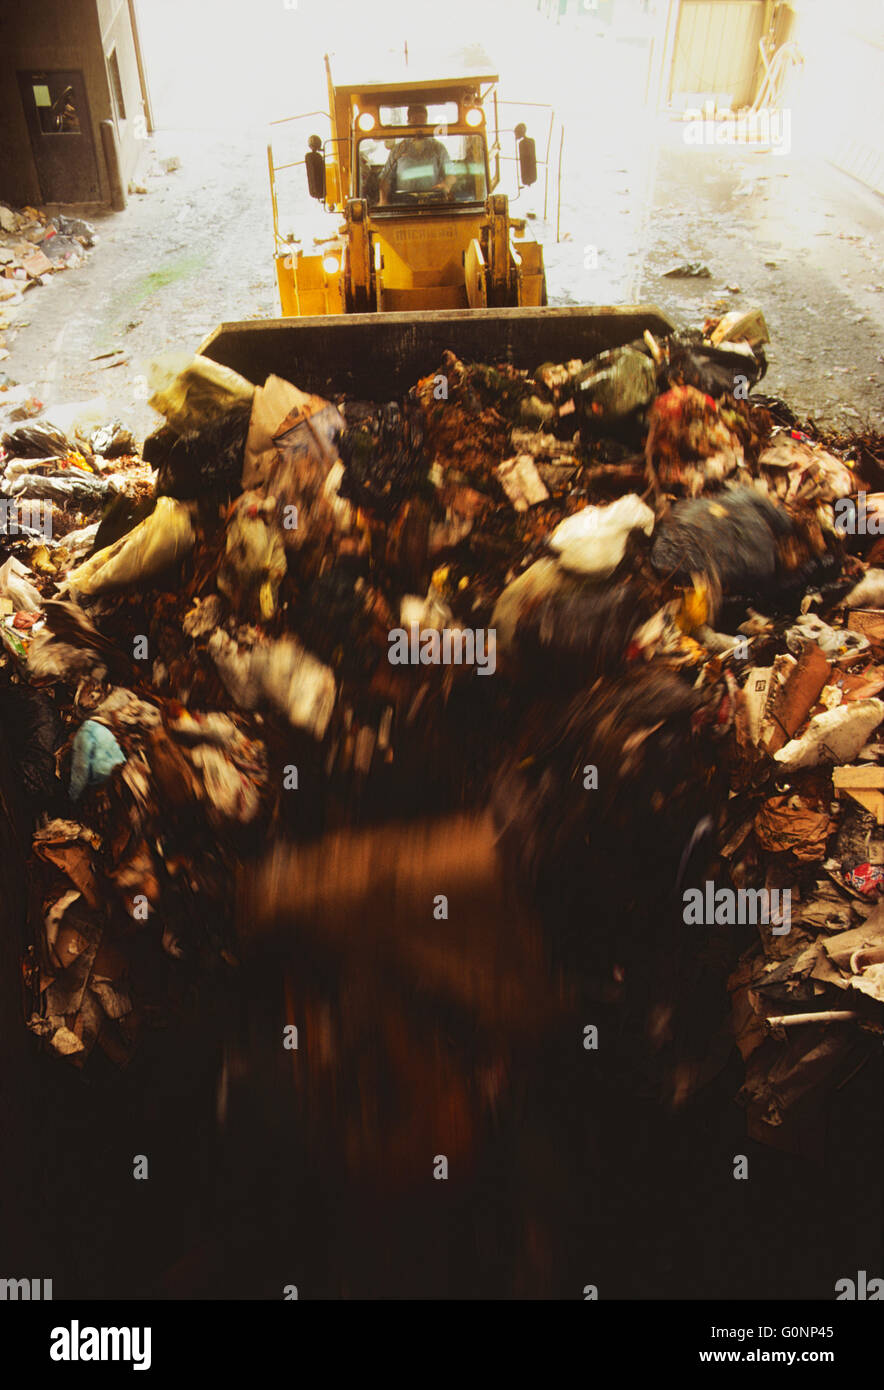 HEAVY EQUIPMENT SORTS TRASH AT A TRANSFER STATION AT CLARKSTOWN, NEW YORK, RECYCLING CENTER & LANDFILL - Stock Image